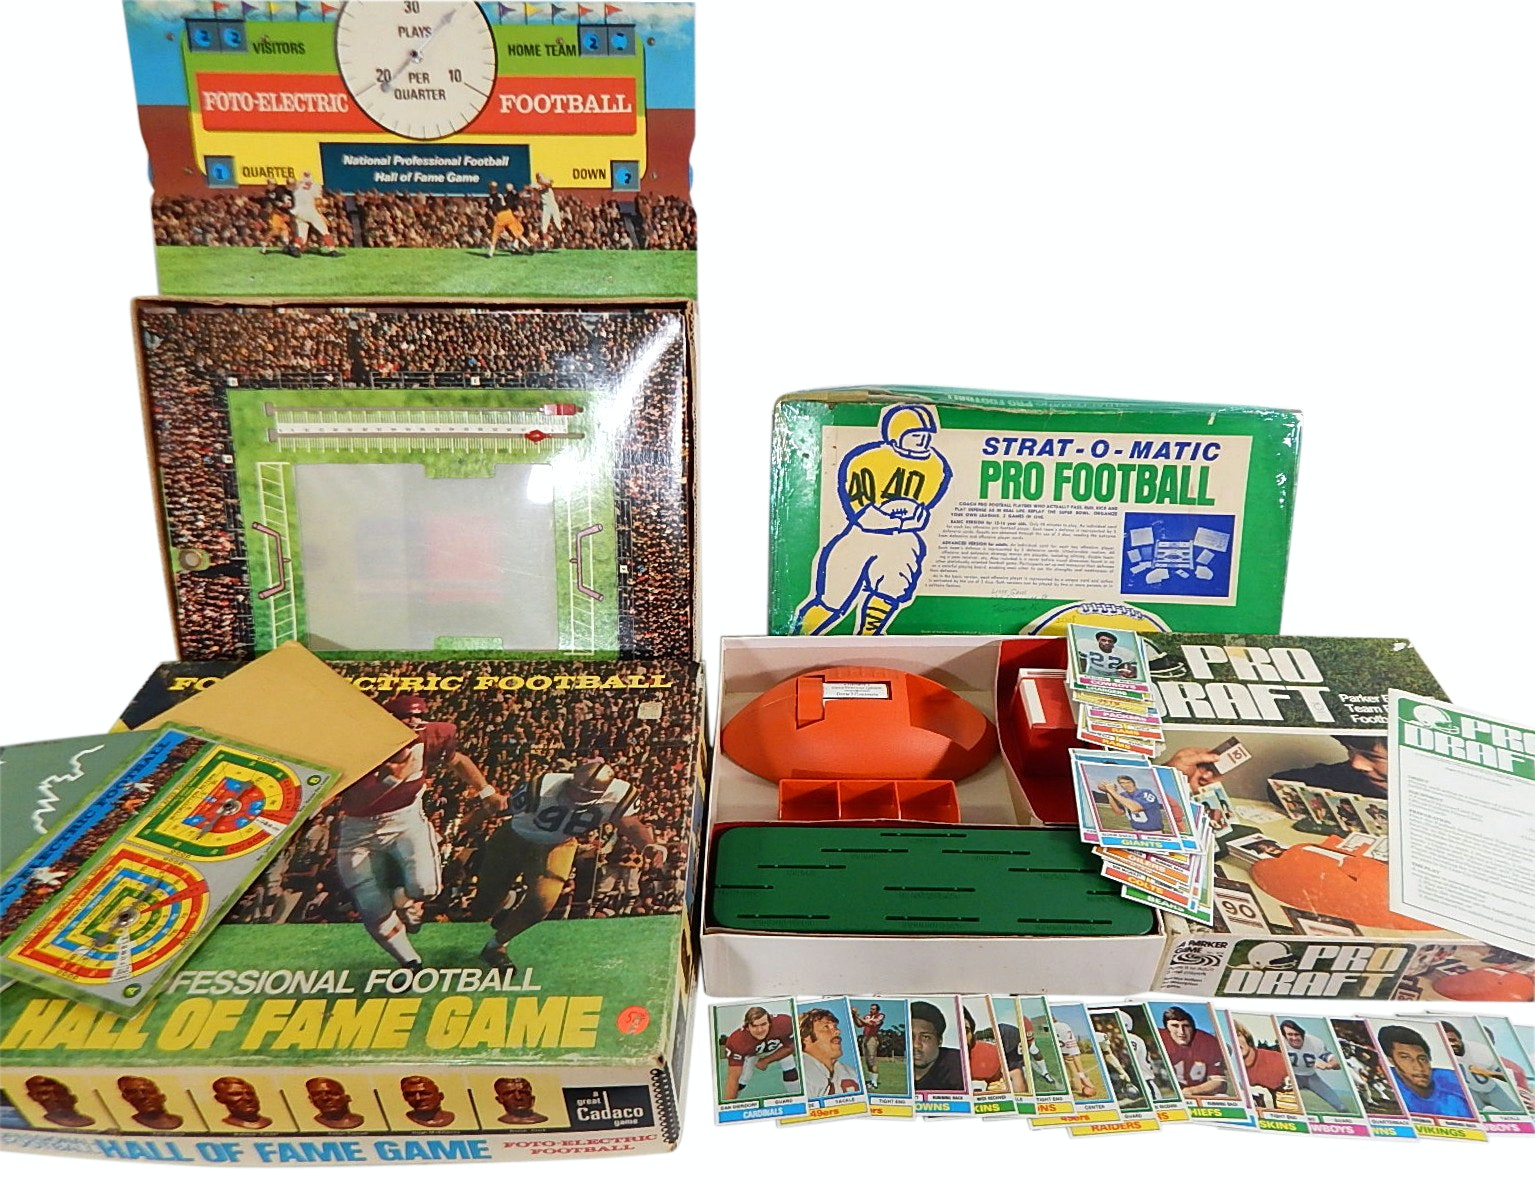 1970s Pro Draft Game, 1974 Topps Football Cards, 1970 Cadaco Pro Football Game